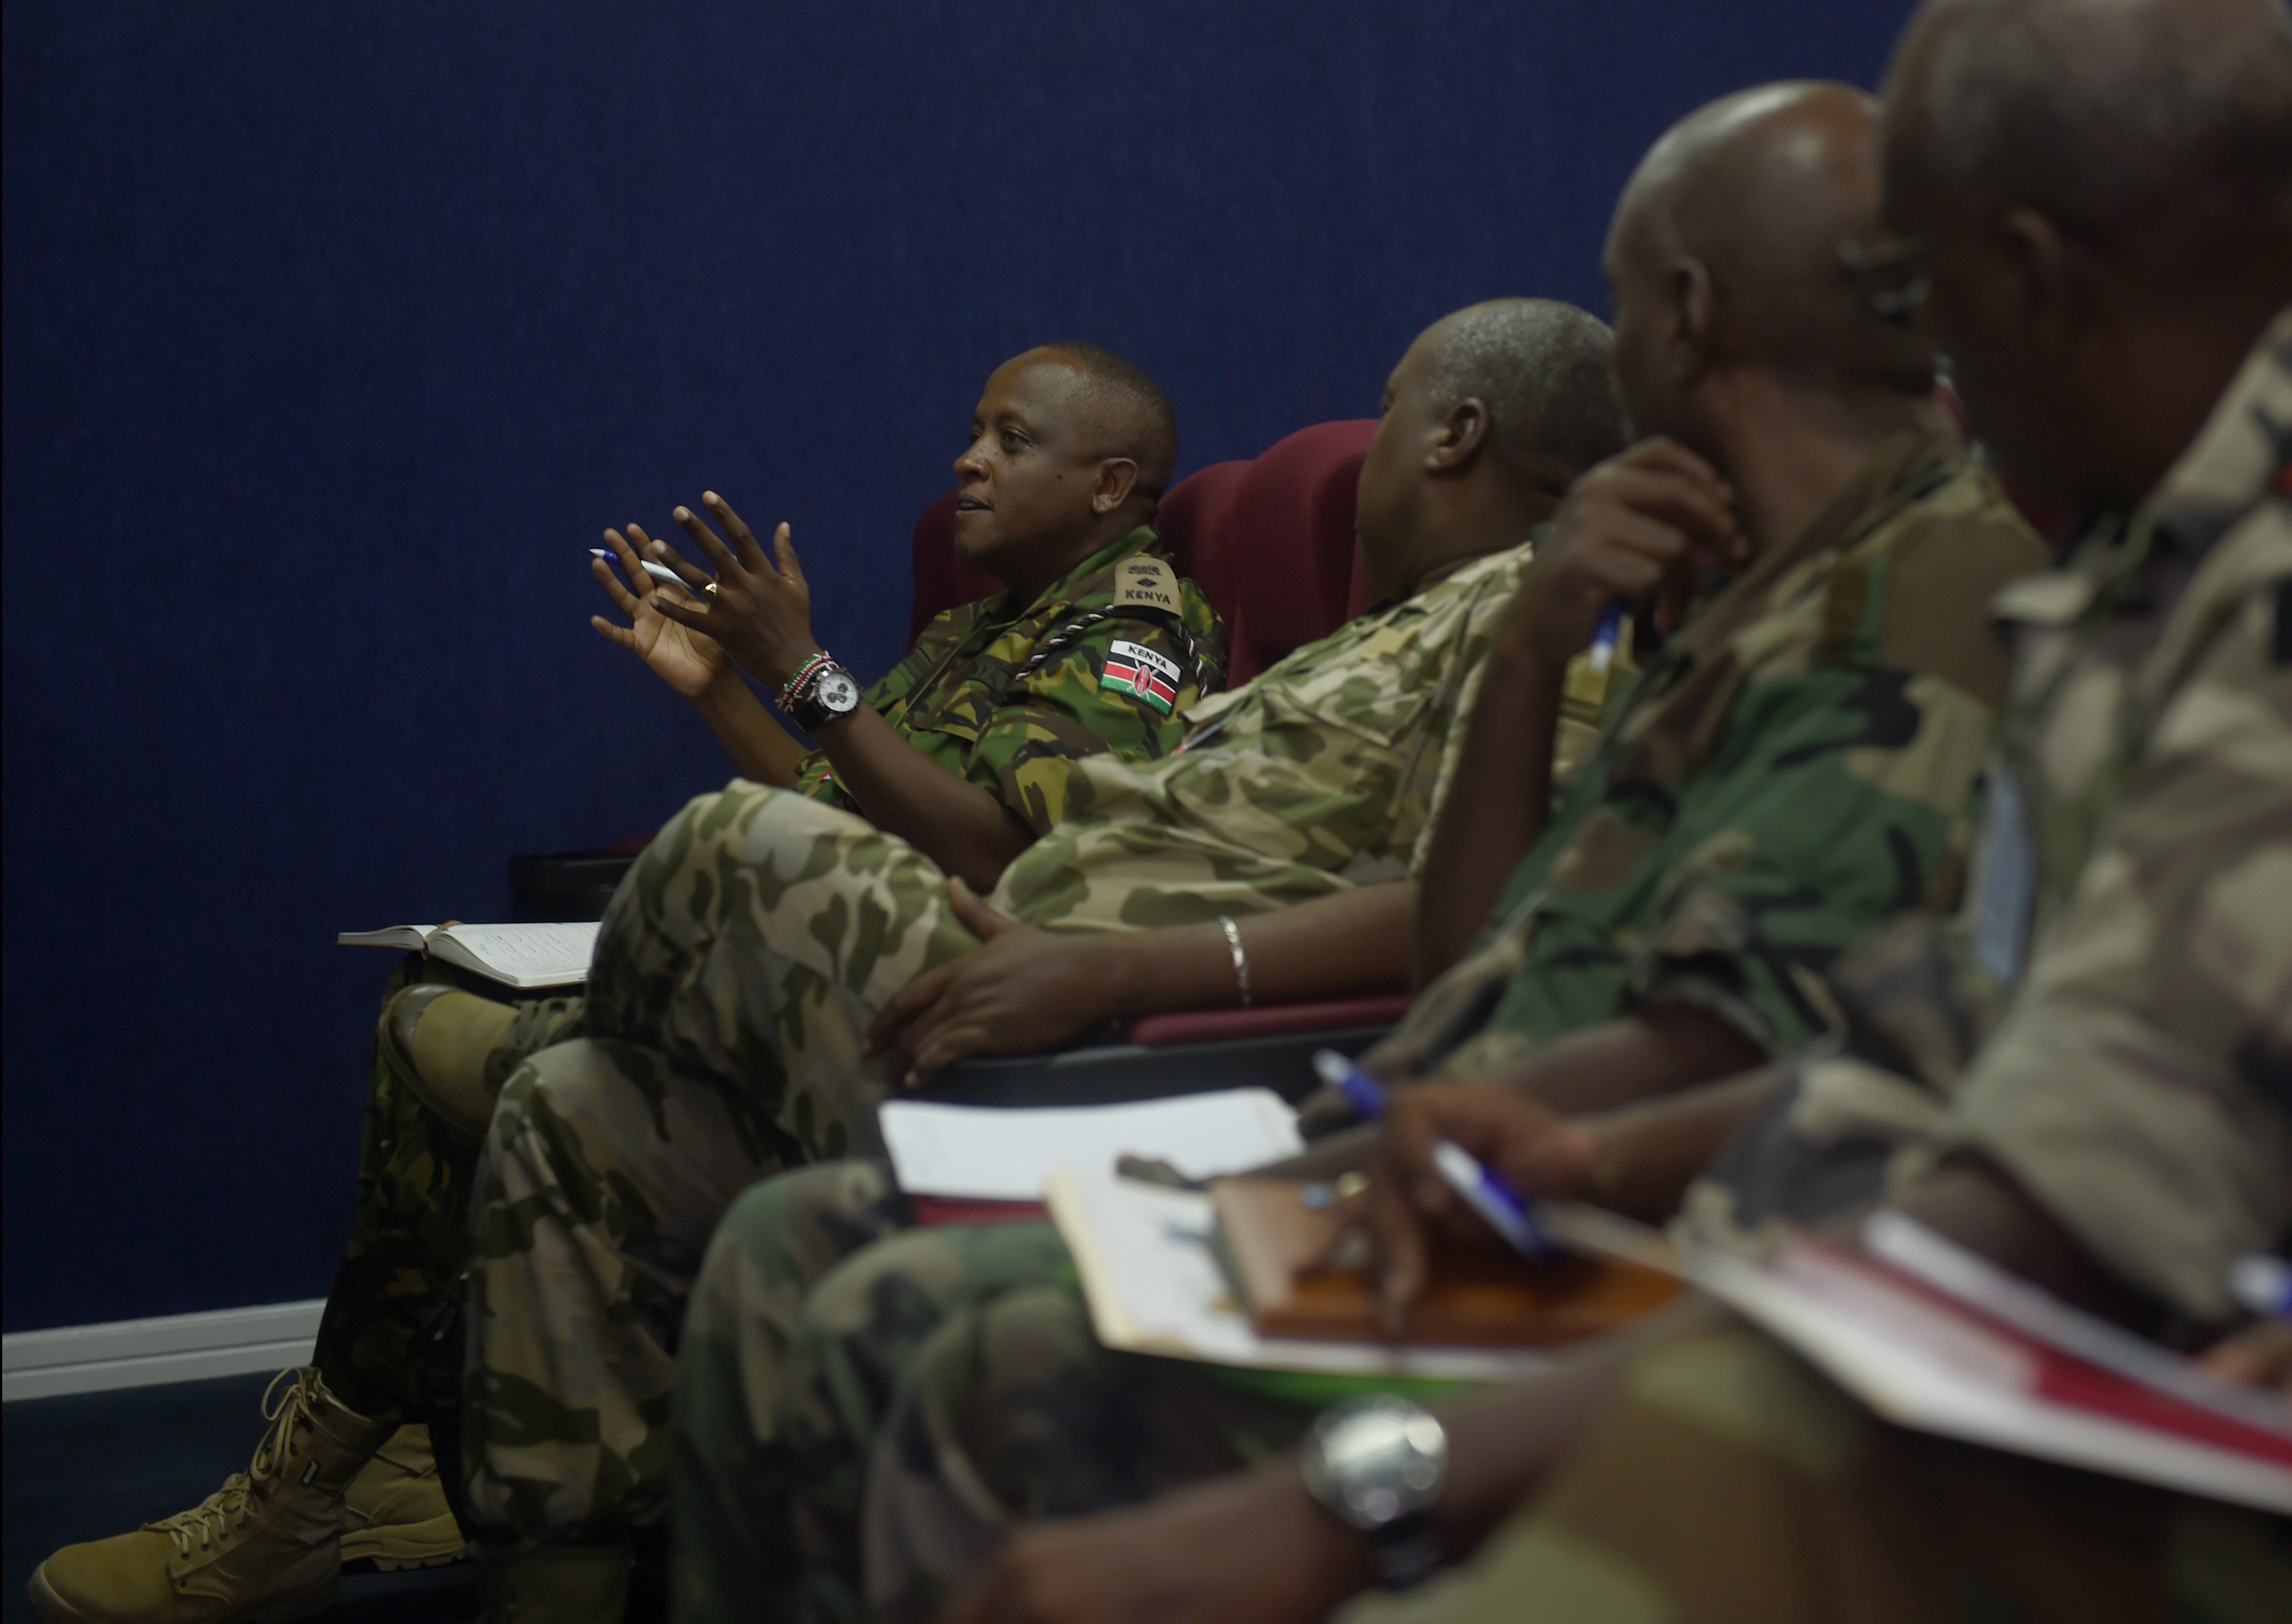 Lt. Col. Paul Njuguna Muiru, African Union Mission in Somalia force spokesperson, asks a question during a Combined Joint Task Force–Horn of Africa Public Information Officer Conference at Camp Lemonnier, Djibouti, June 2, 2015. Twenty-eight military public information officers met together to collaborate and discuss public affairs strategic communication and information operations.